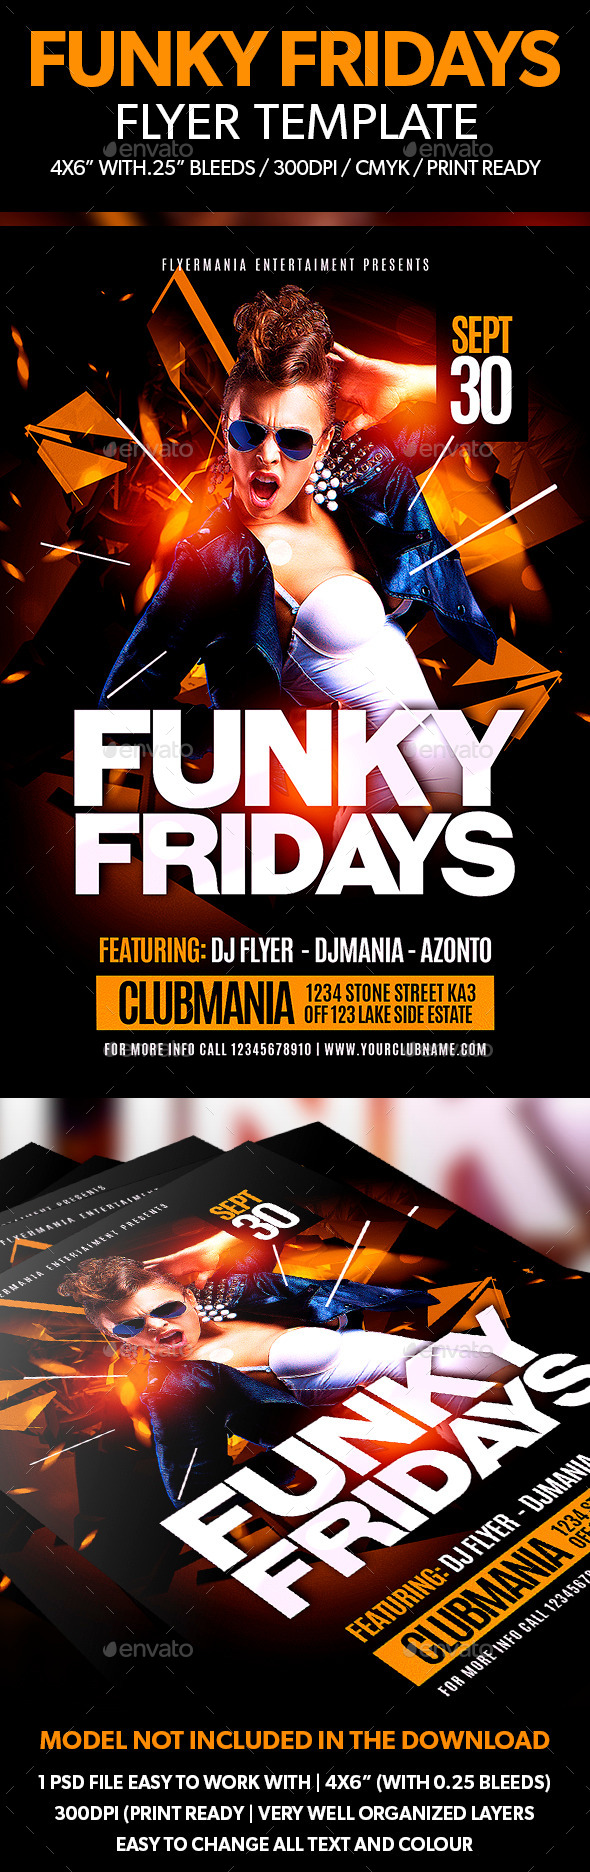 Funky Fridays Flyer Template - Clubs & Parties Events